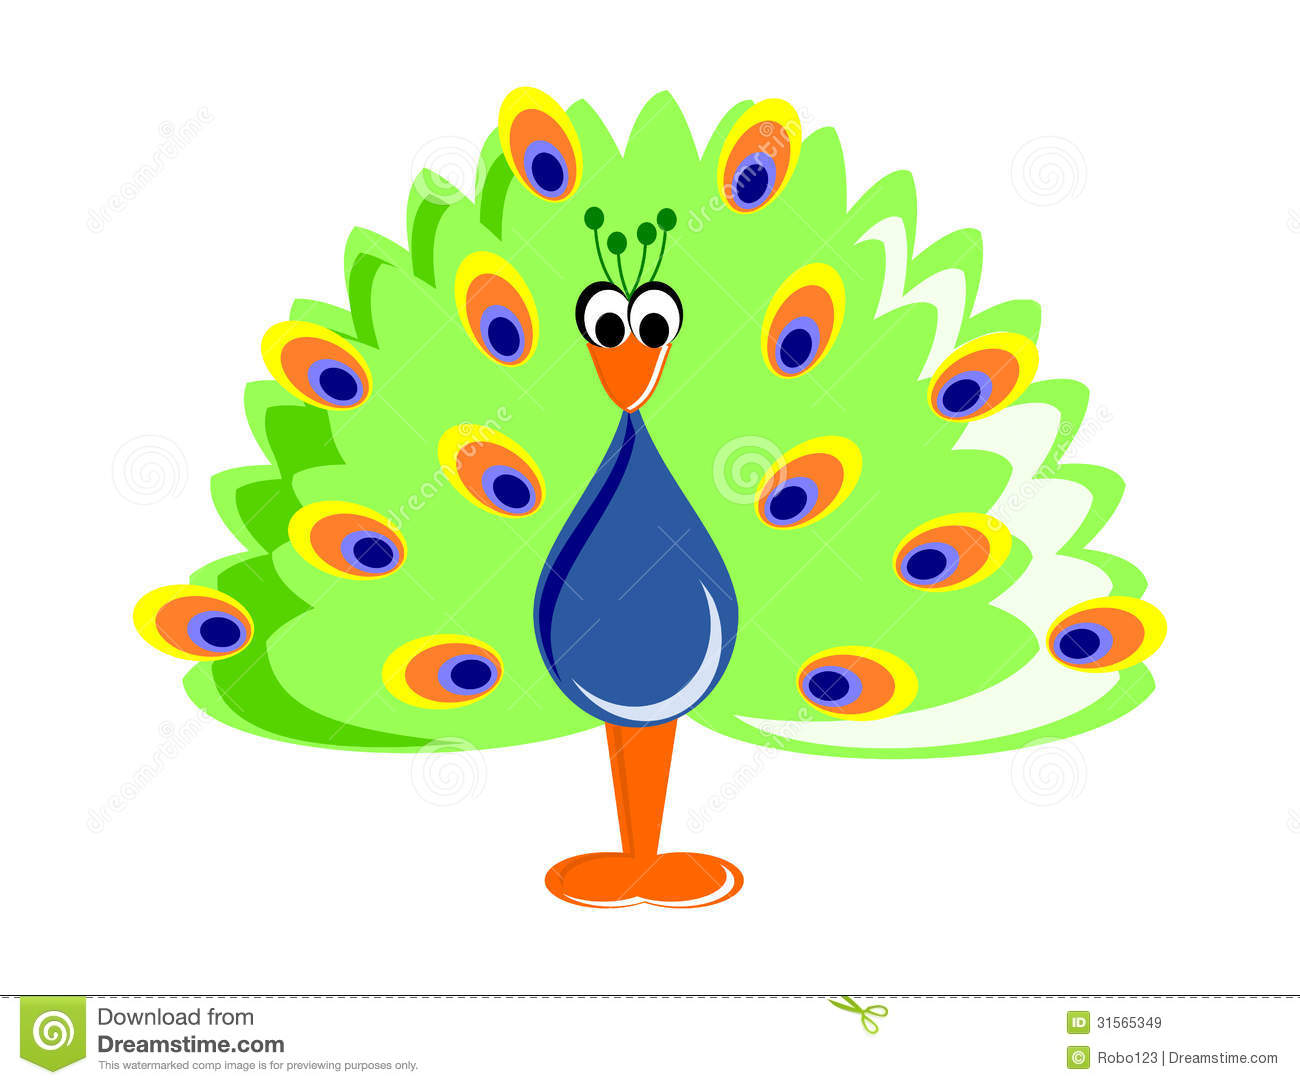 Peafowl clipart #10, Download drawings